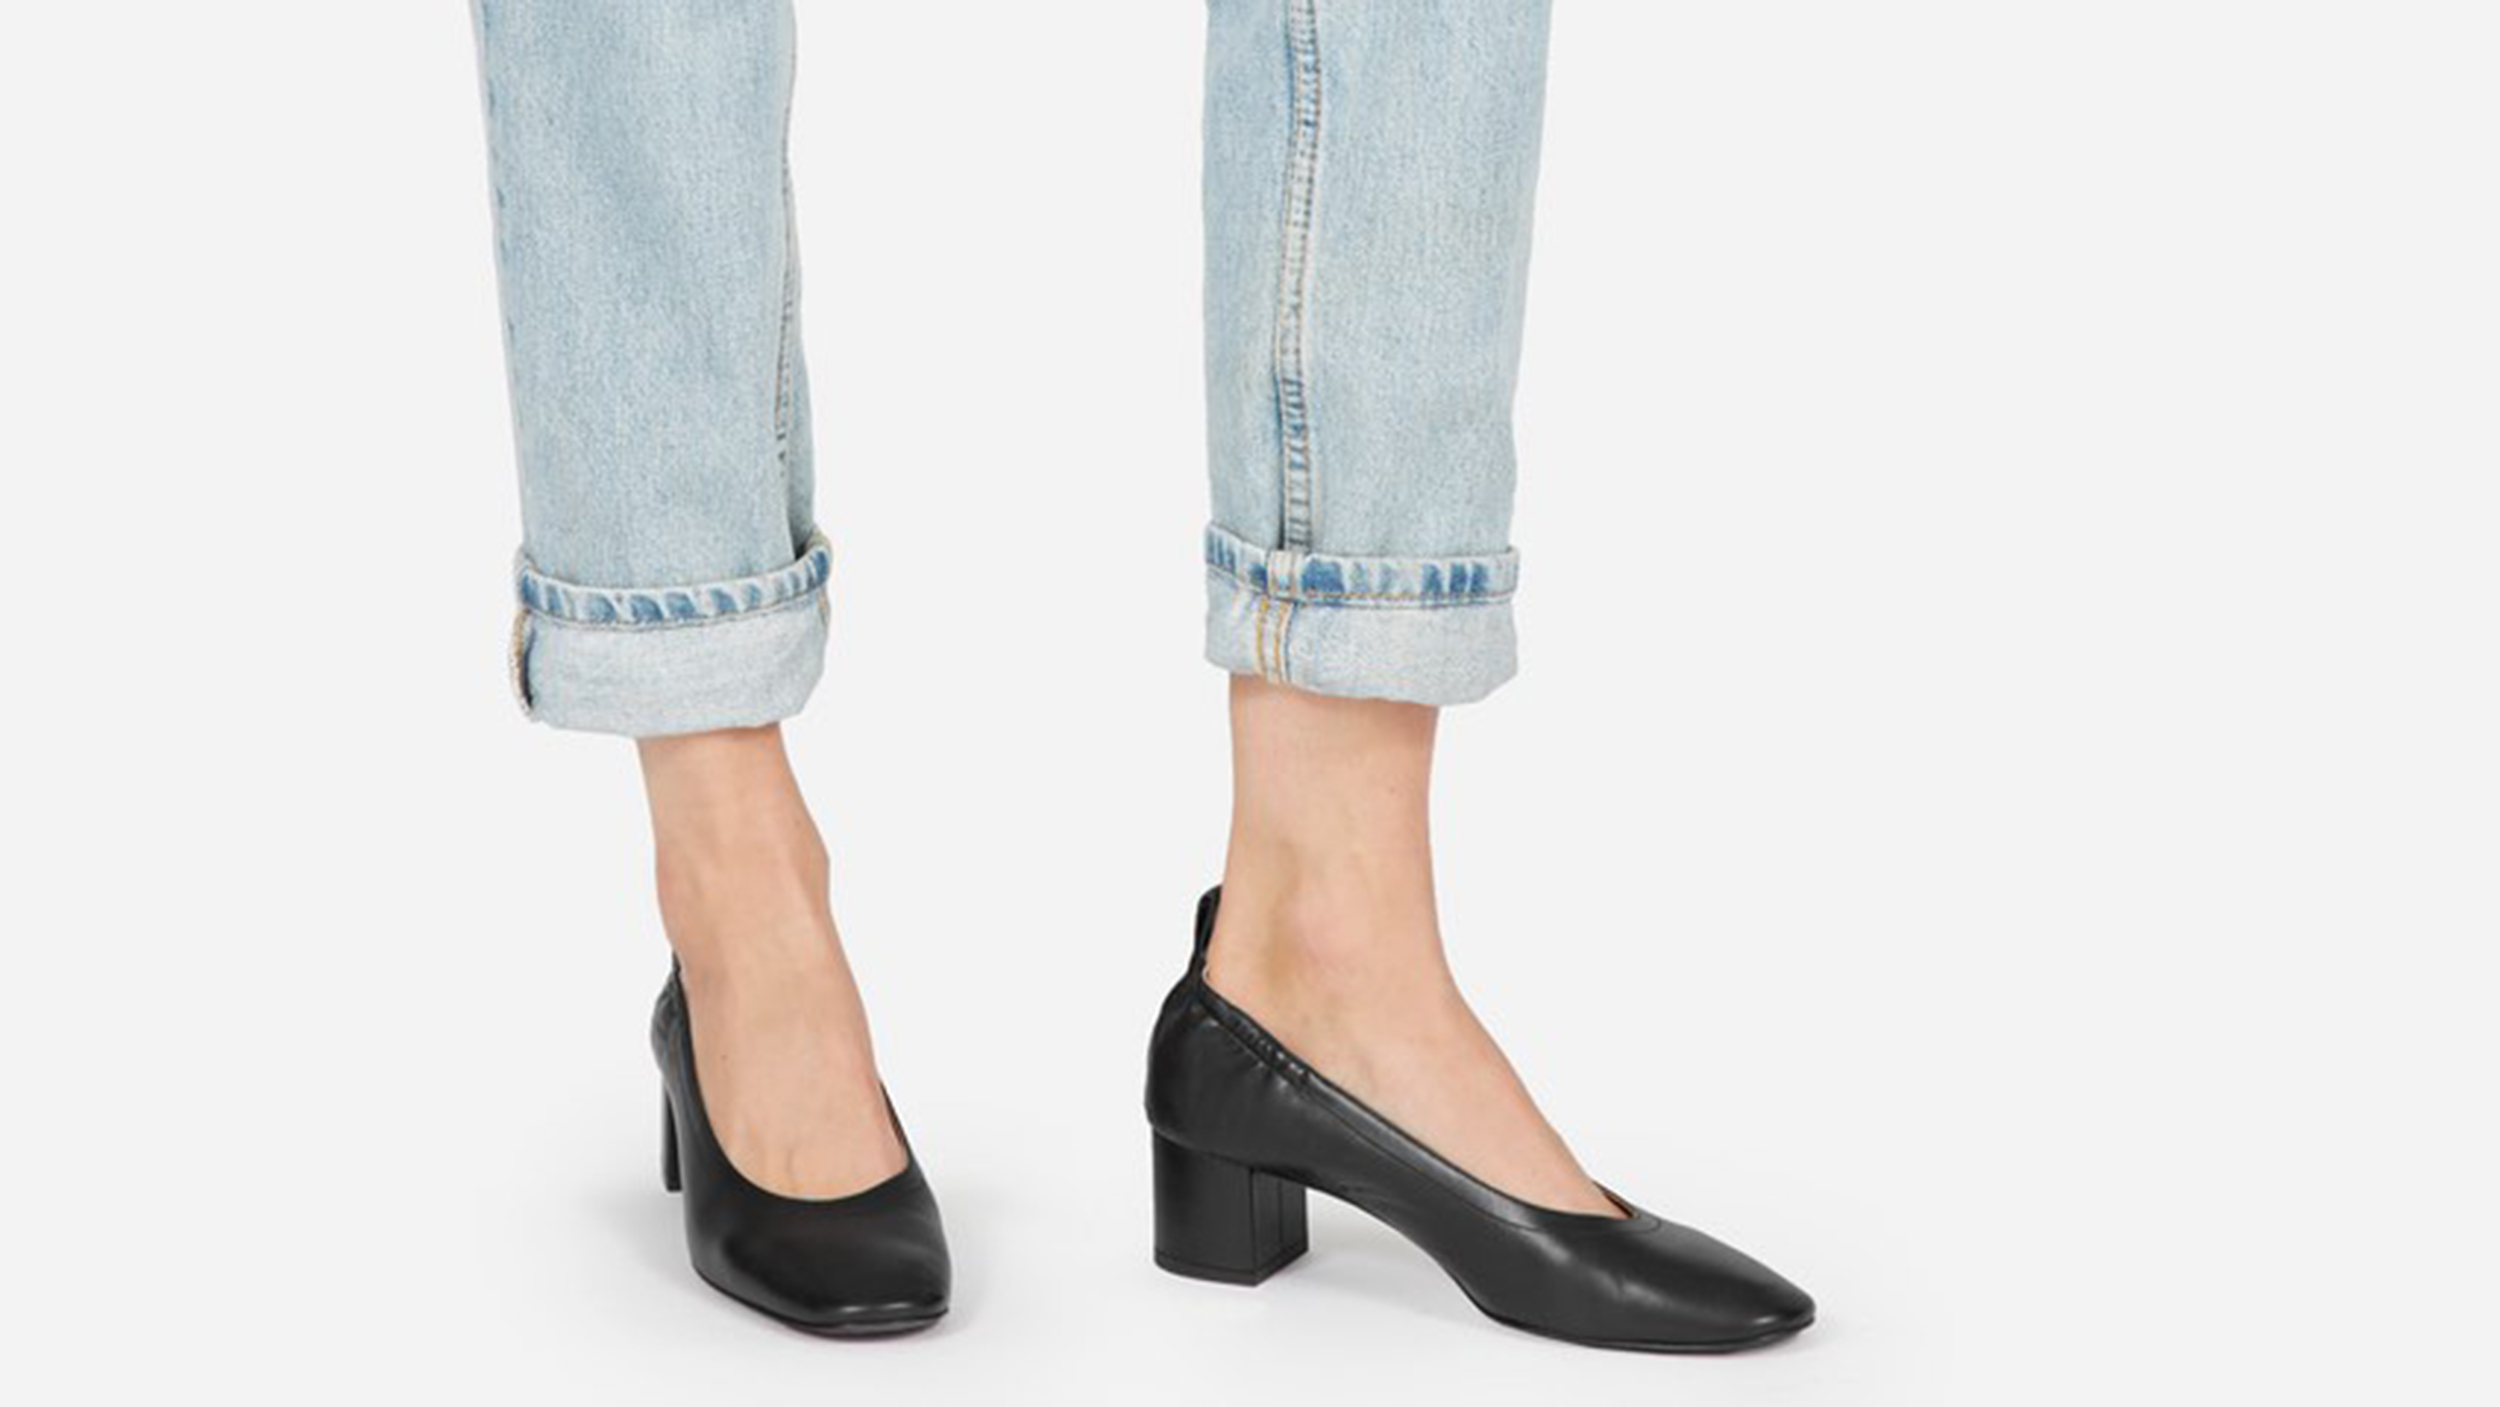 Remember Those Everlane Heels With A 15 000 Person Waitlist